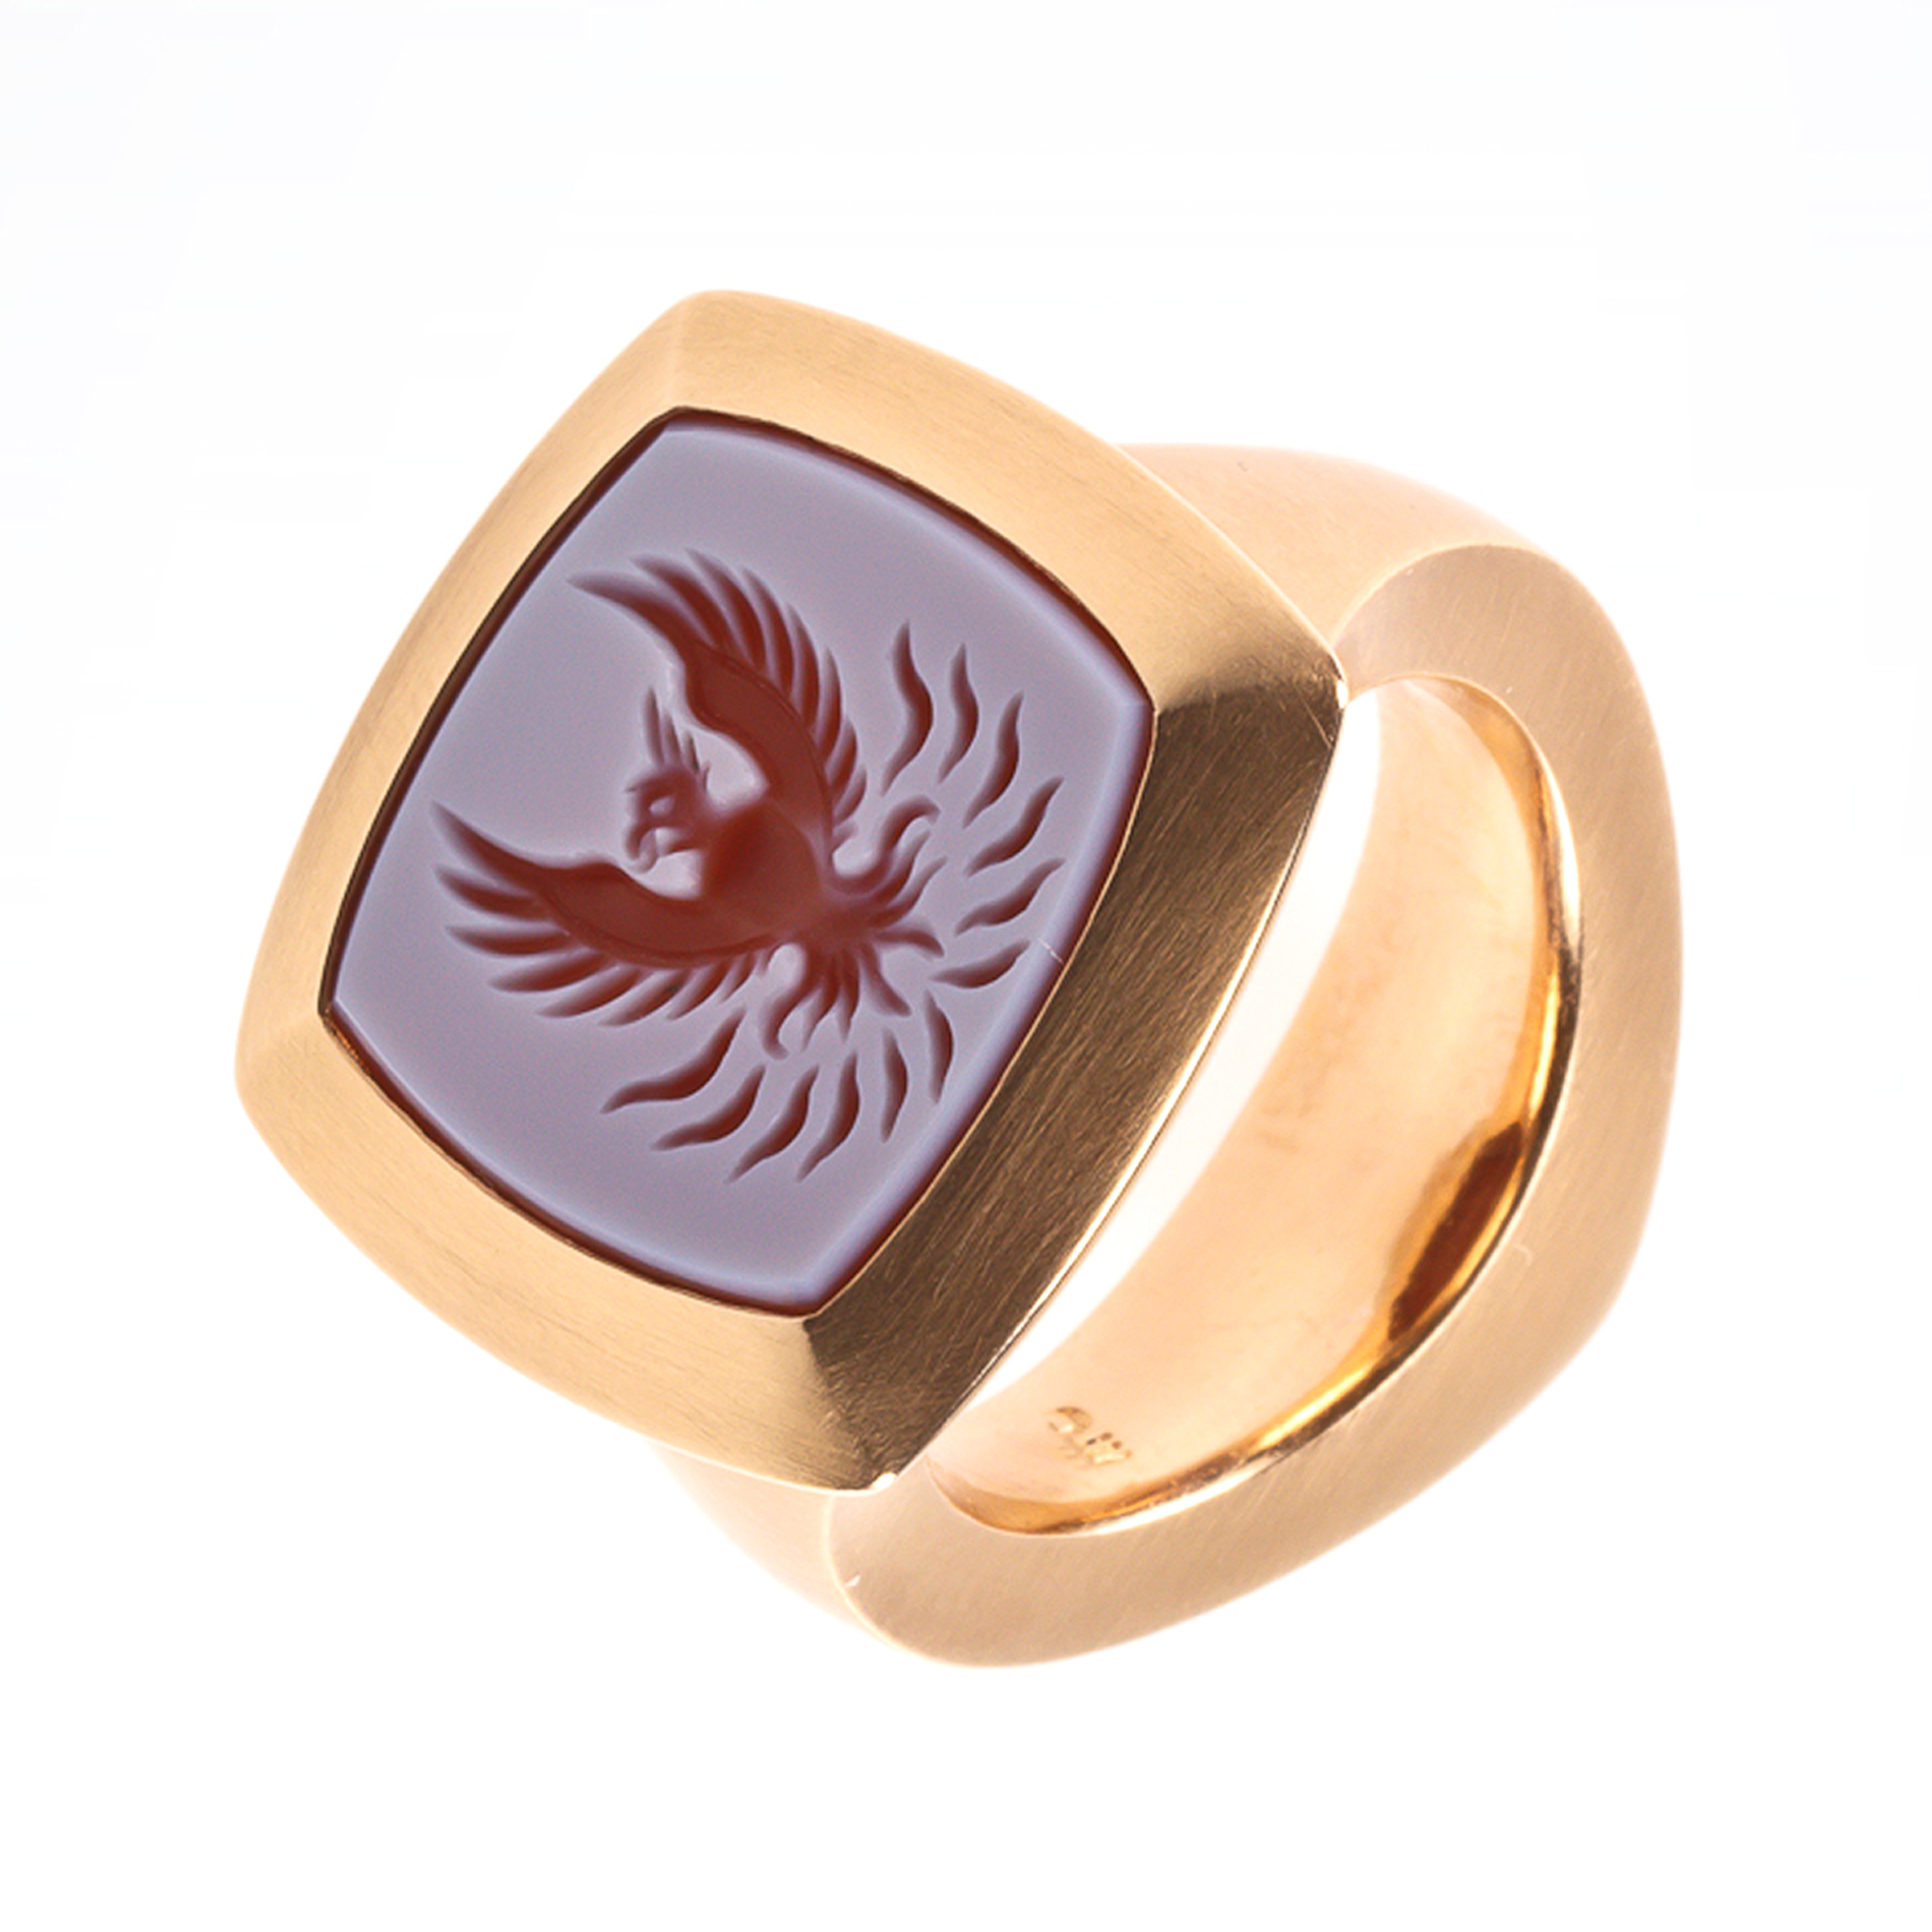 Petra Giers Ring Feuervogel 750 Rotgold  Goldschmiede